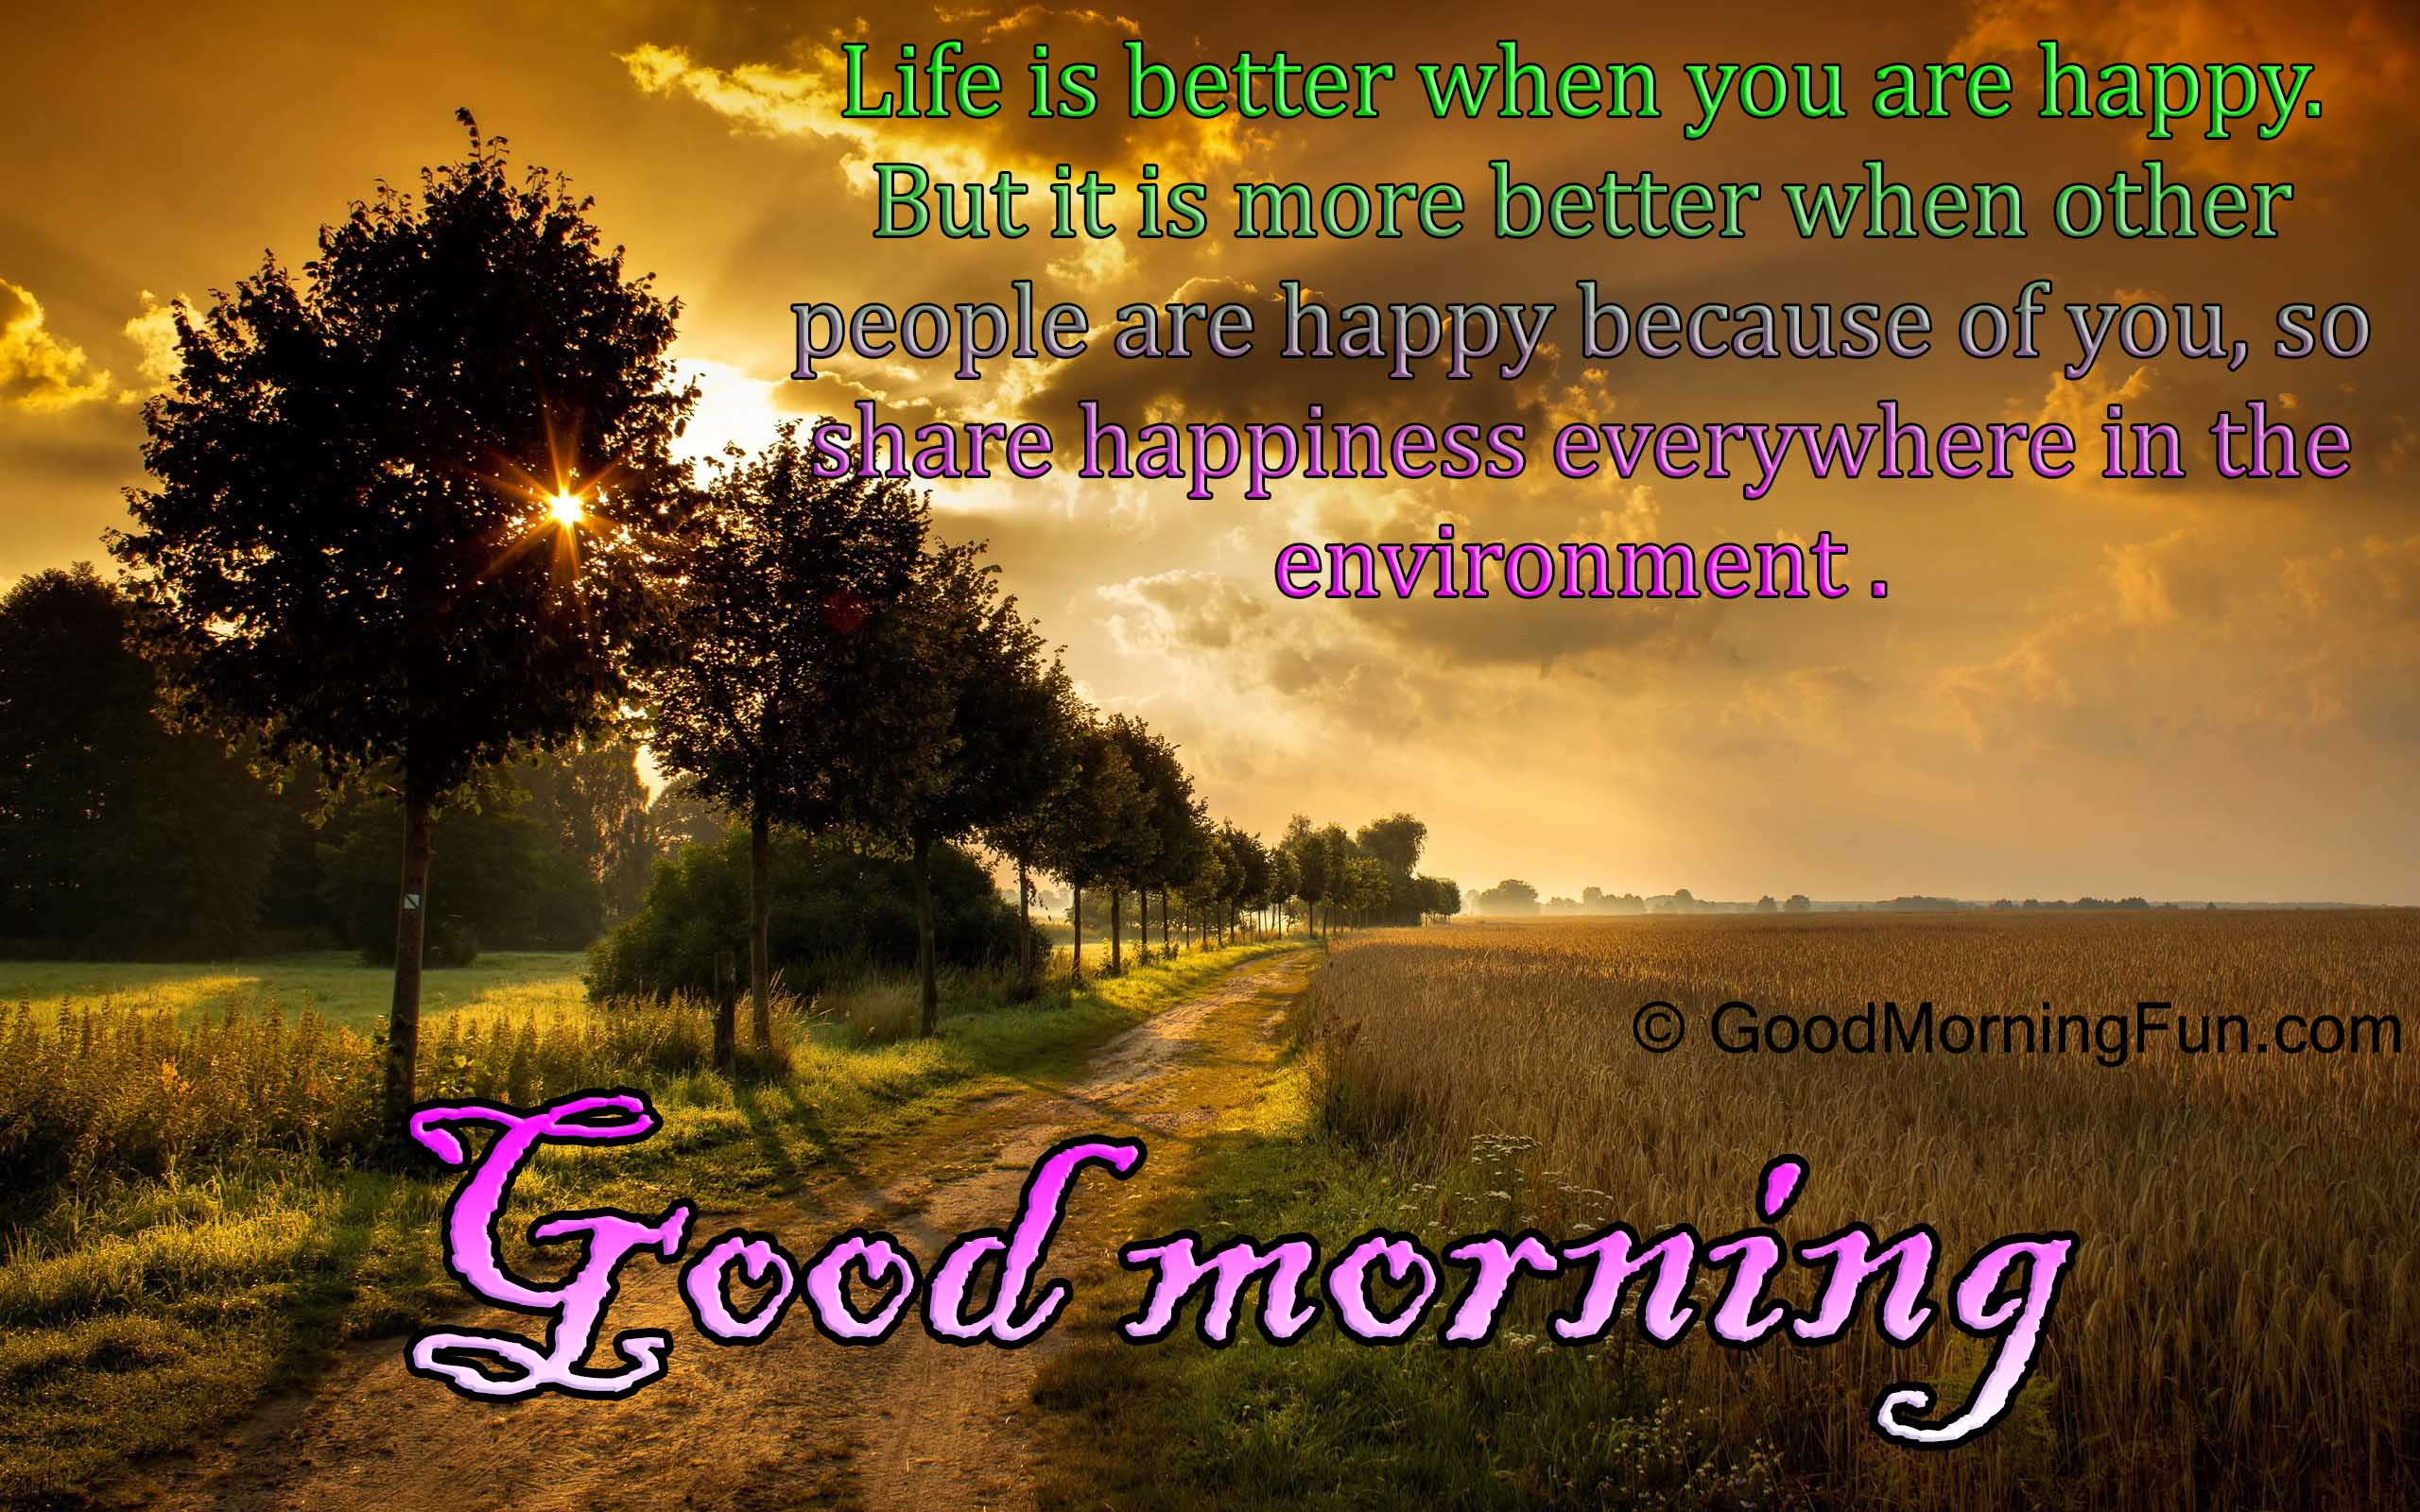 Good Morning Quotes On Life Happy Happyness Environment Good